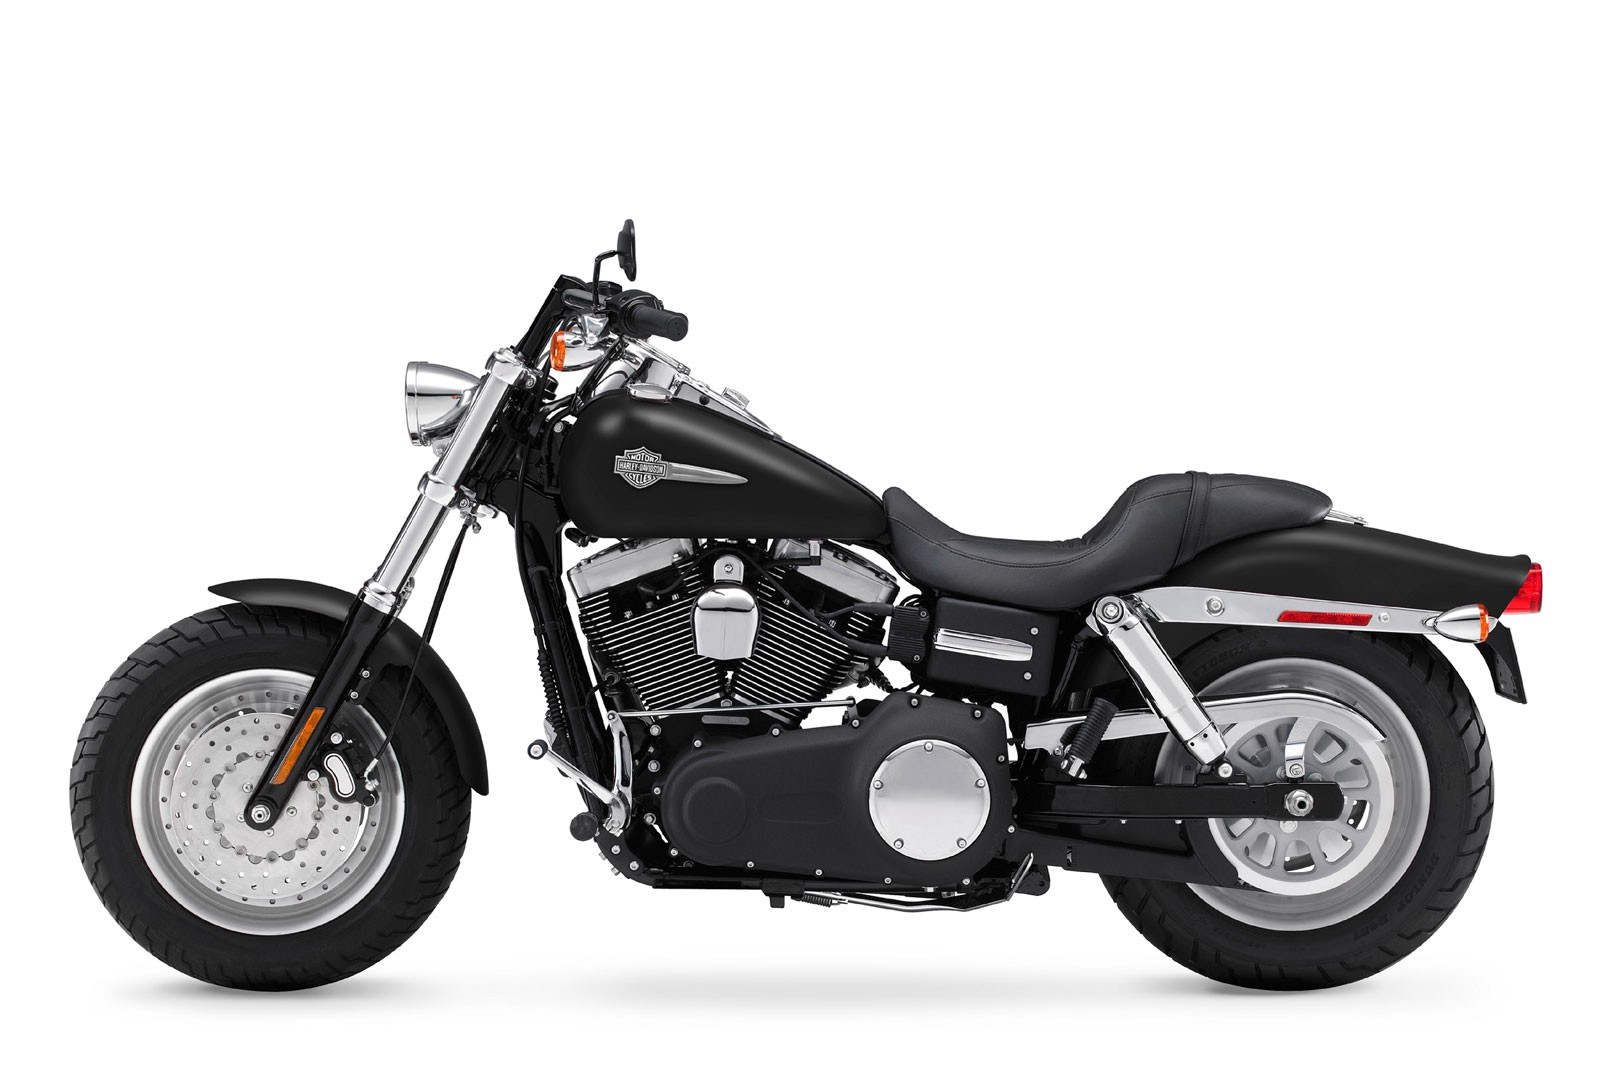 harley davidson fat bob specs 2008 2009 autoevolution. Black Bedroom Furniture Sets. Home Design Ideas